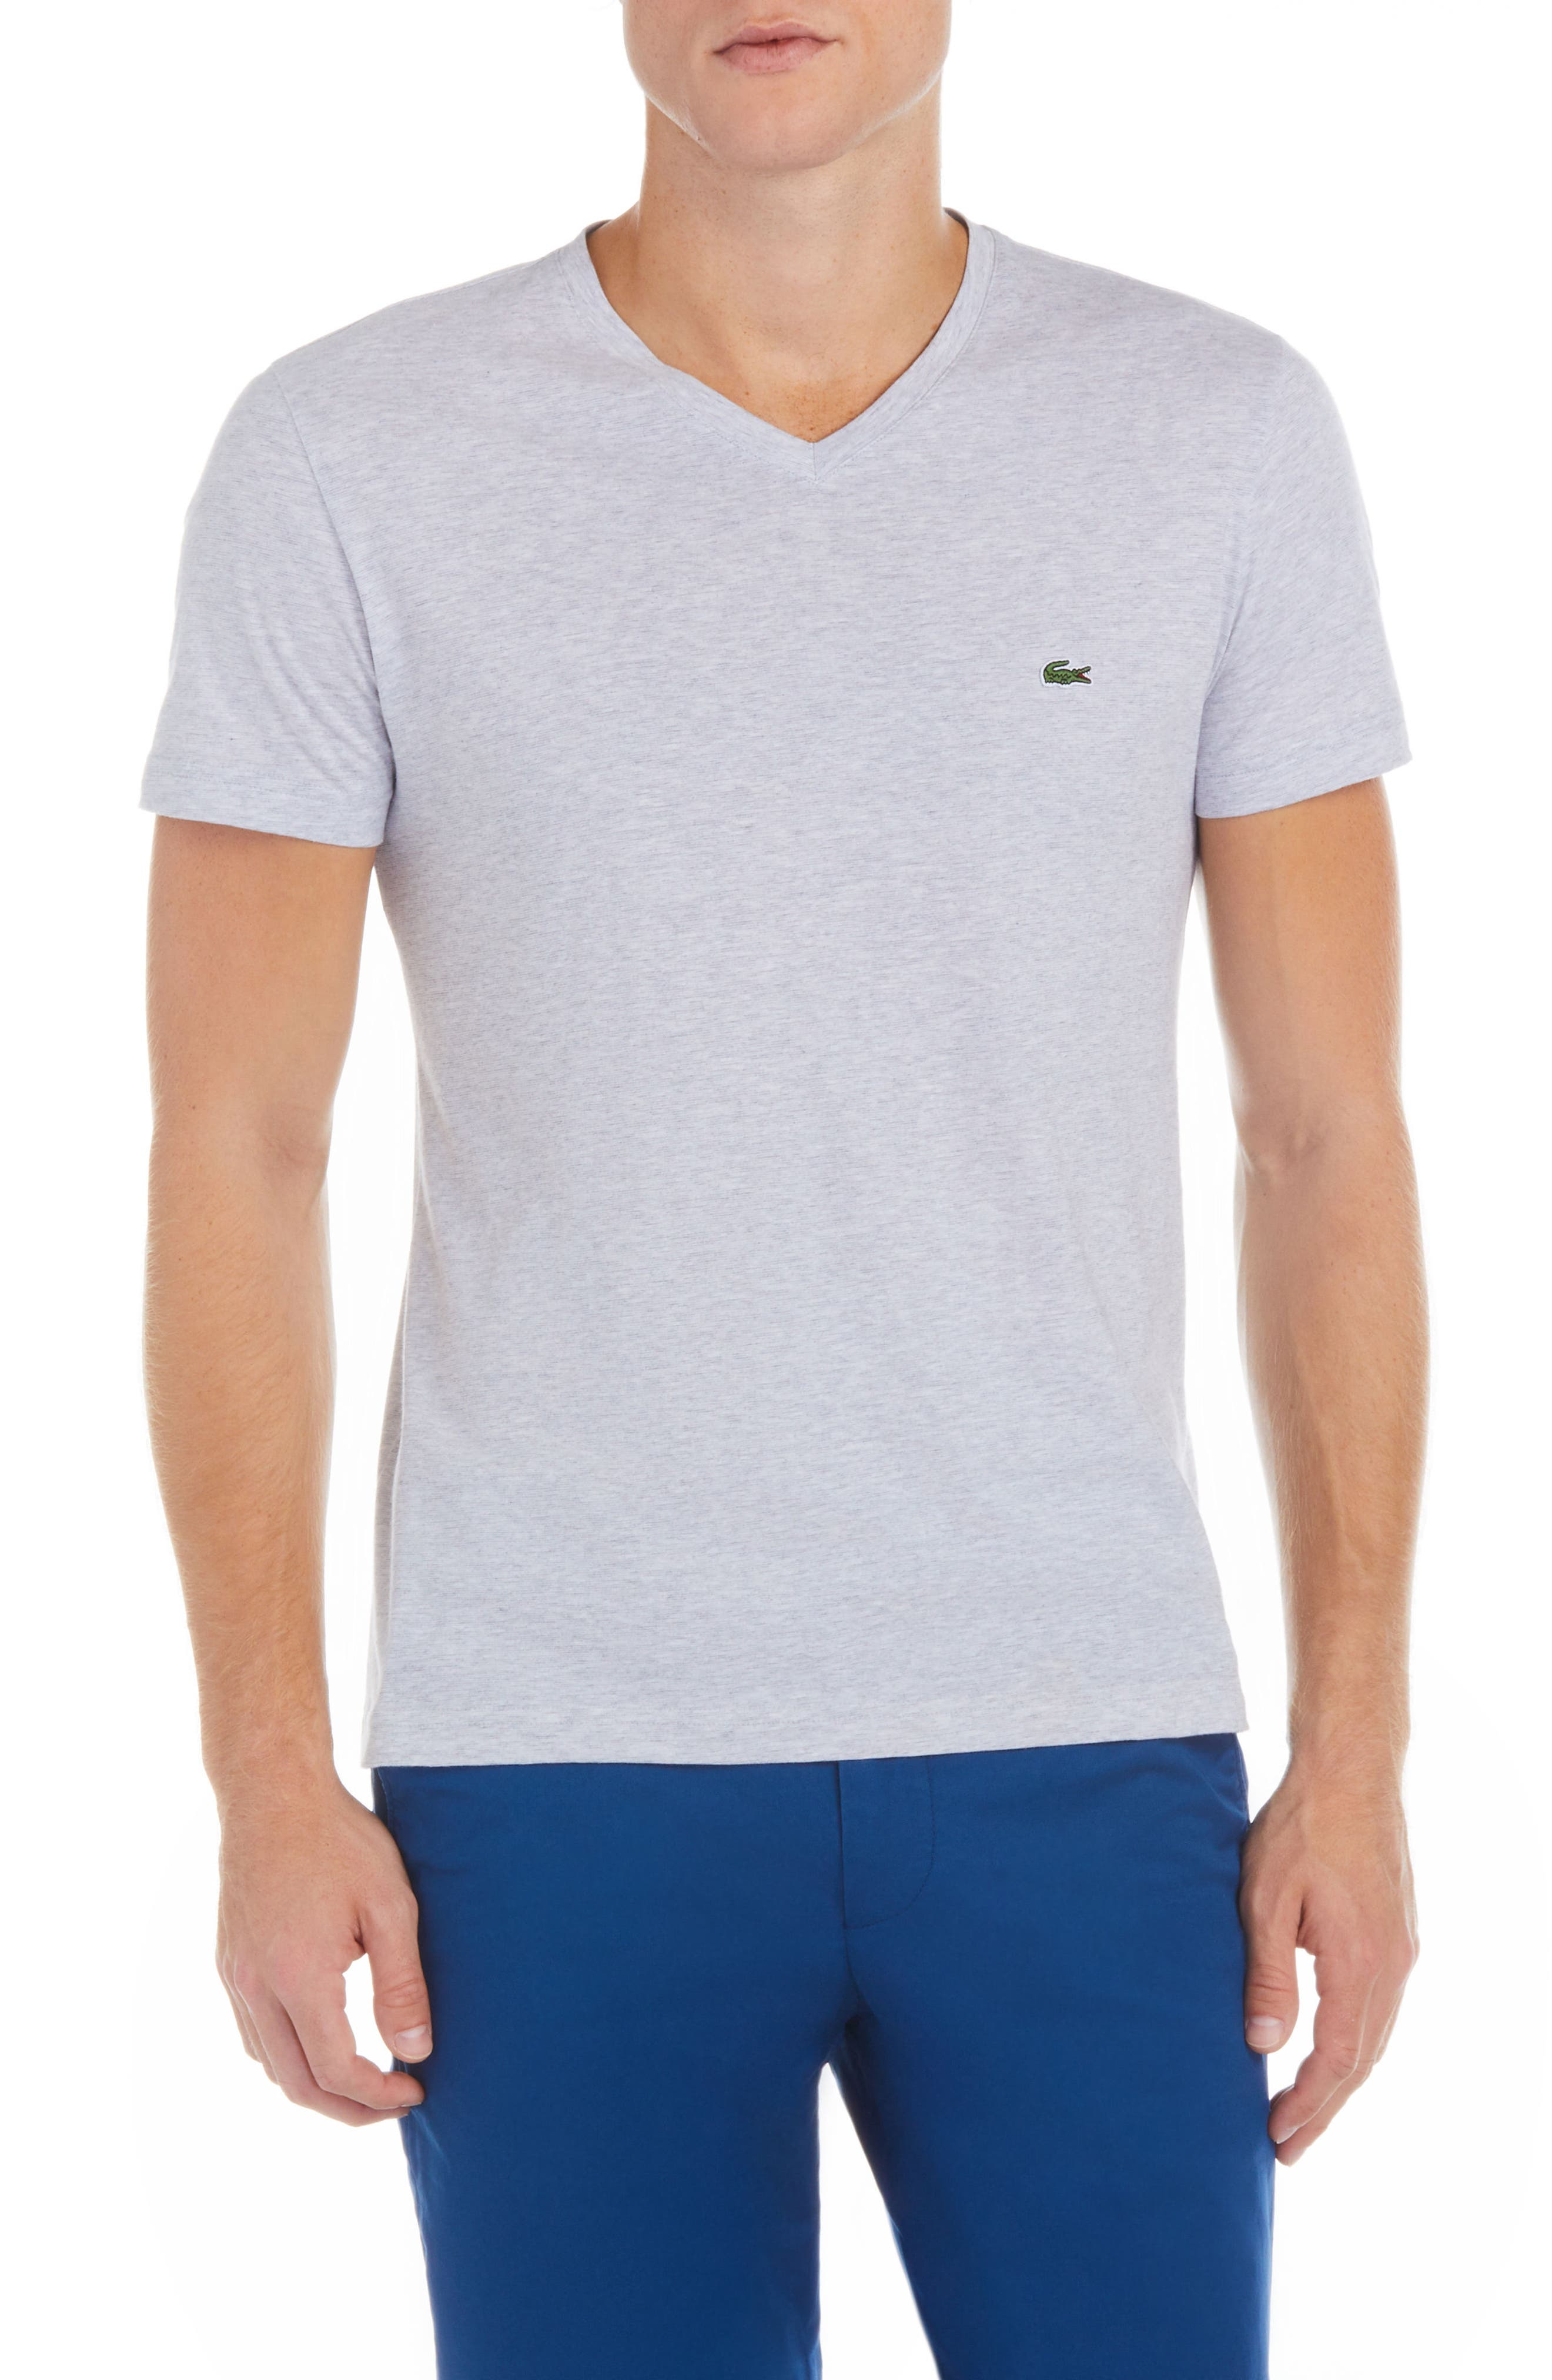 Lacoste V-Neck Cotton T-Shirt